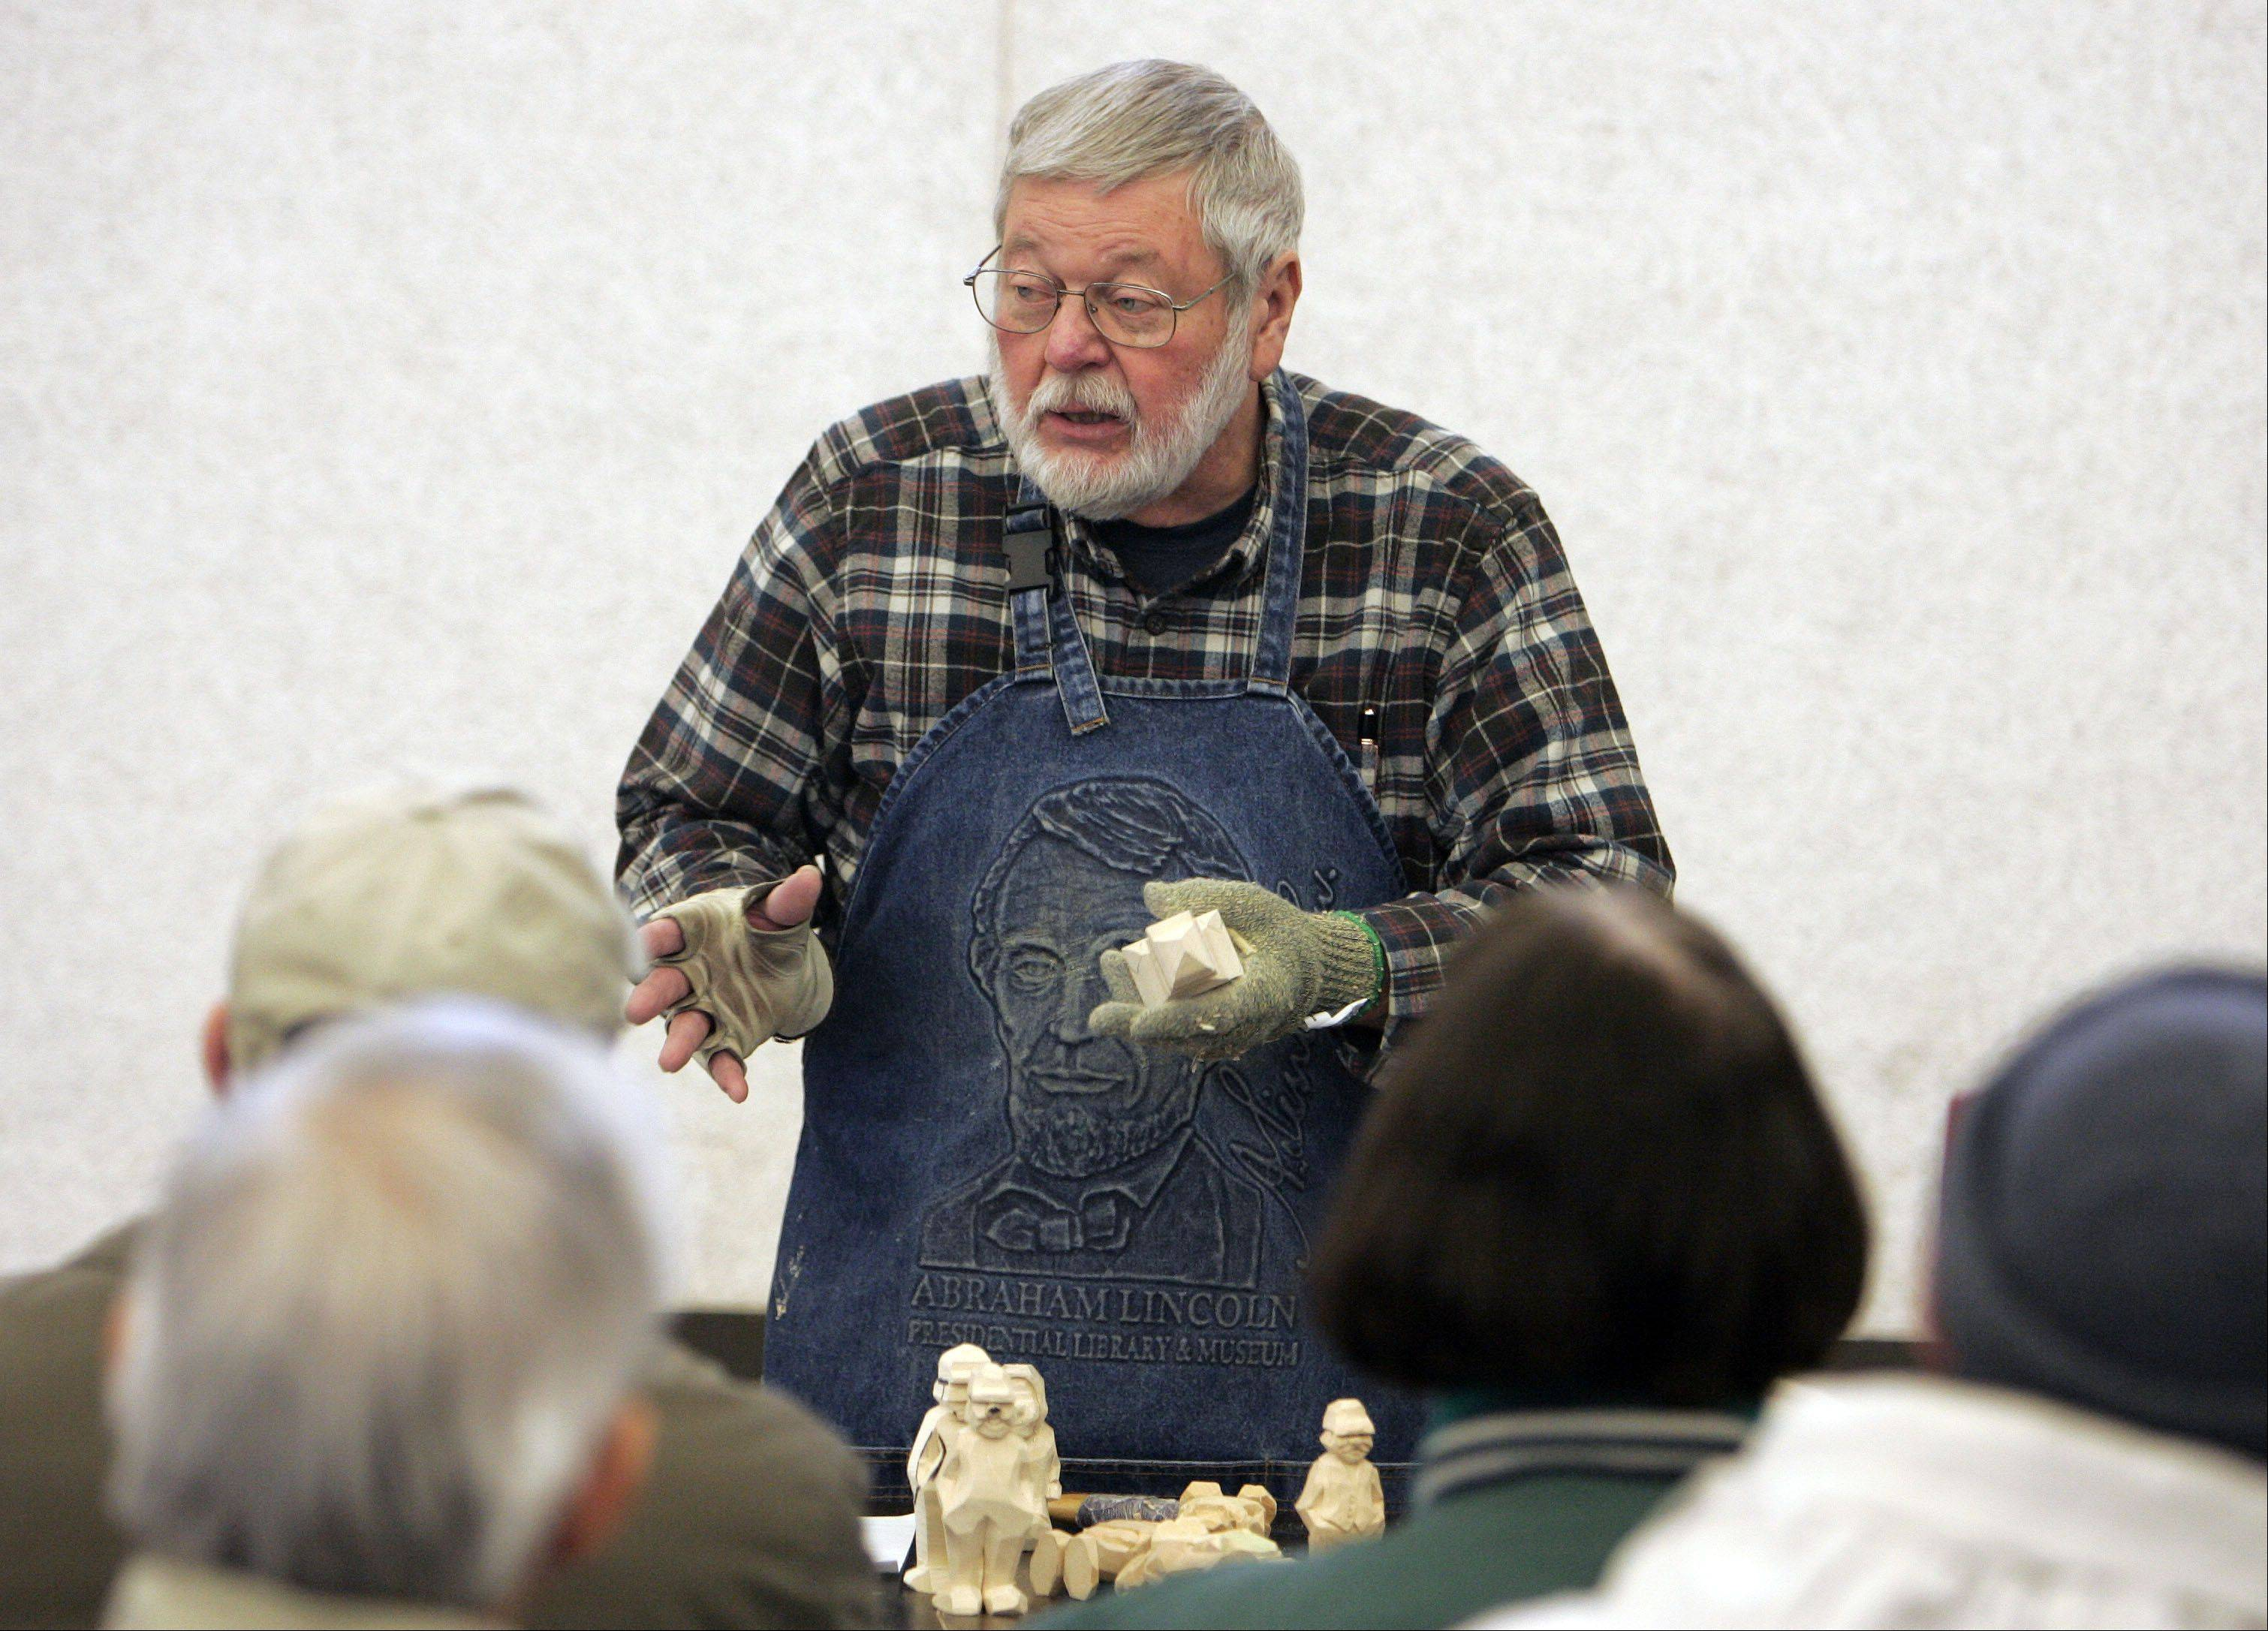 Dave Kublank explains the ins and outs of Scandinavian flat plain carving during a demonstration at the Winter Wood Wonders art show Saturday at the Kane County Fairgrounds in St. Charles.